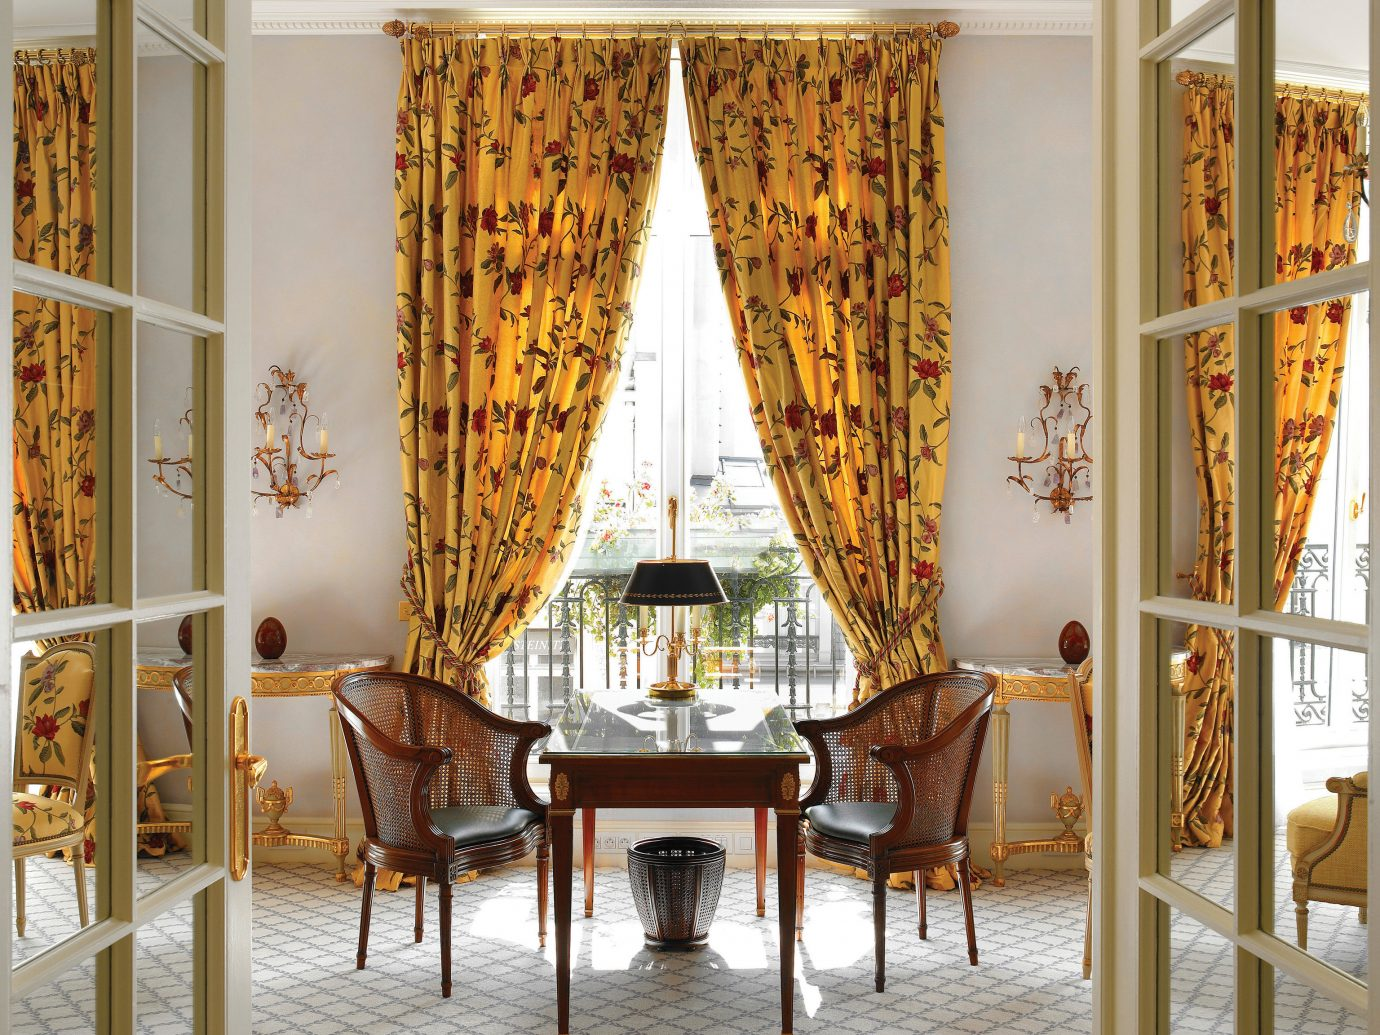 Hotels indoor room dining room curtain interior design window treatment home textile window covering living room Design window